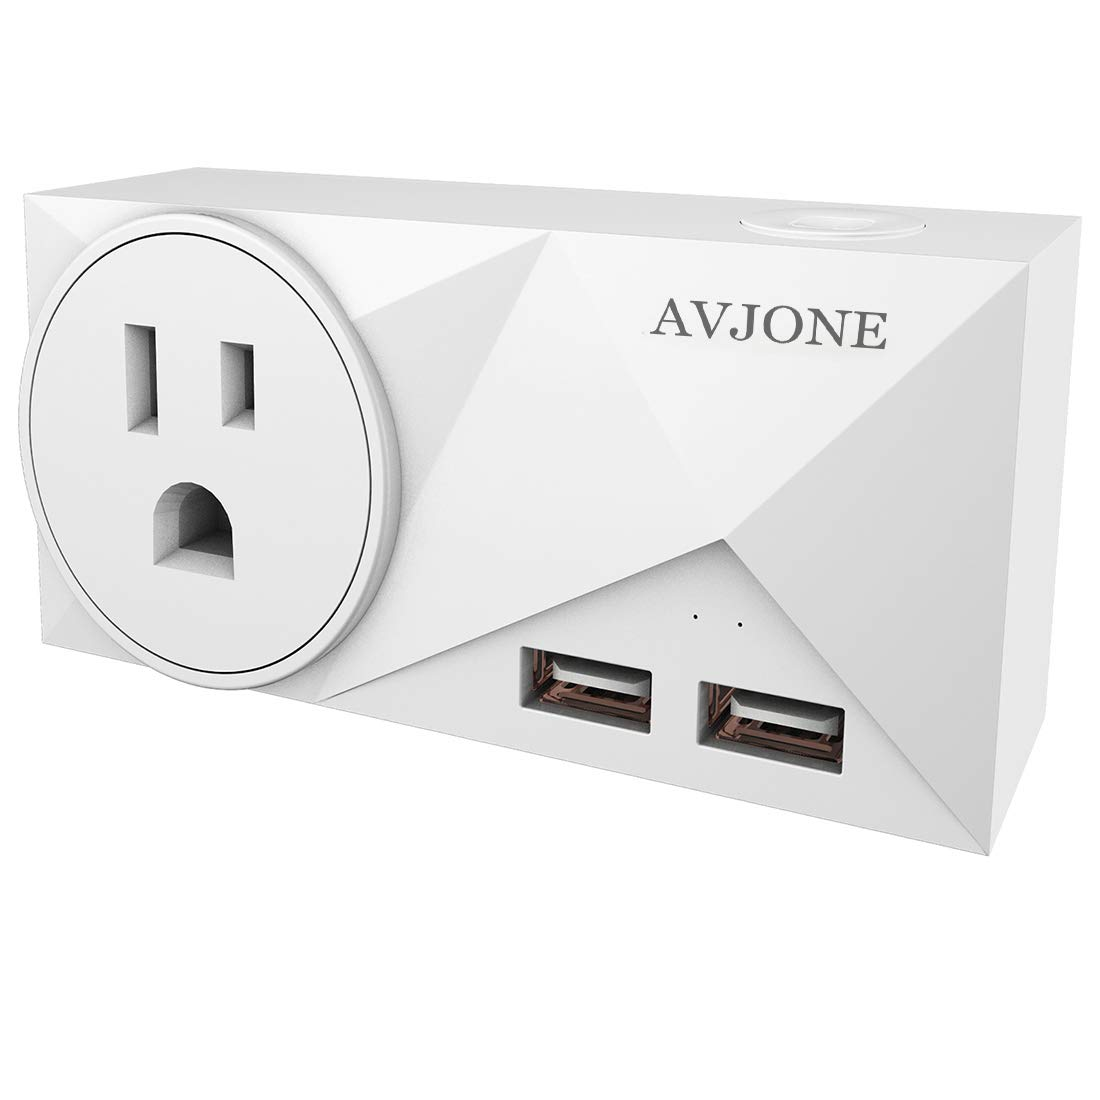 AVJONE Premium Smart Power Plug - WiFi Wireless Power Outlet Socket - Programmable Timing Function - Compatible with IFTTT, Alexa, Echo & Google Assistant Voice Control - 1 Socket + 2 USB Ports